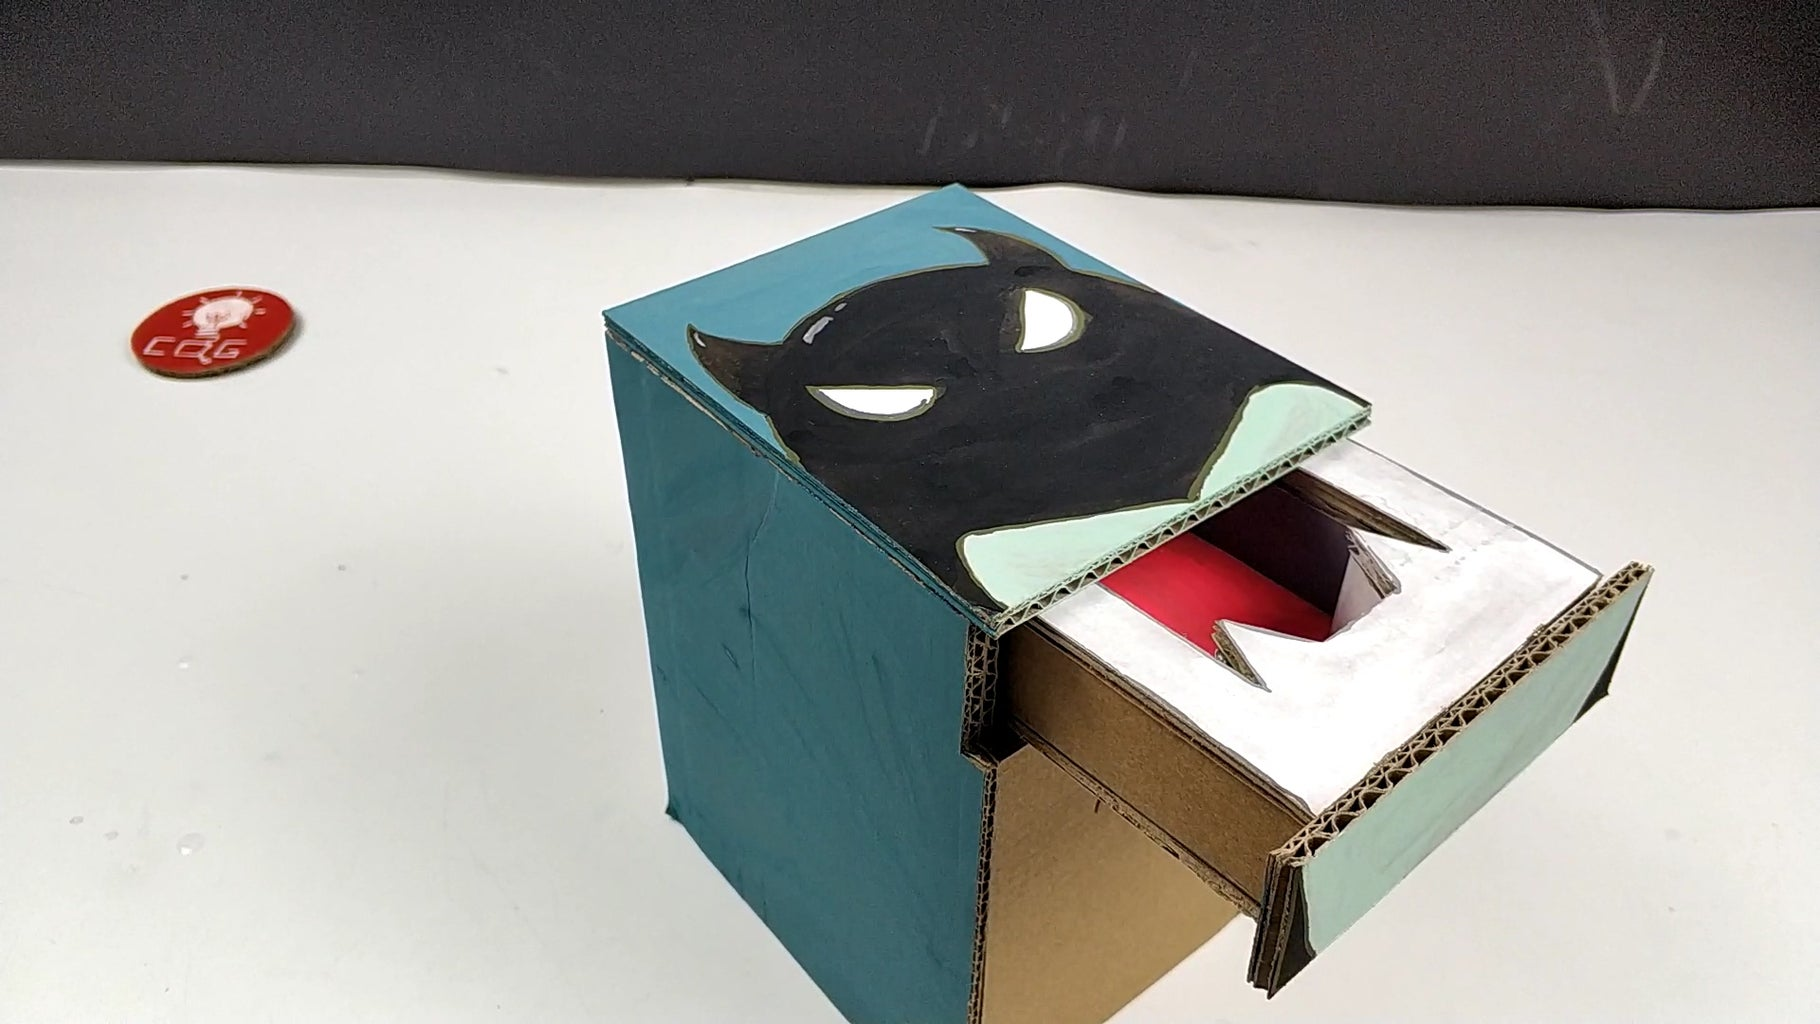 How to Make a Small Demon Magic Piggy Bank With Cardboard